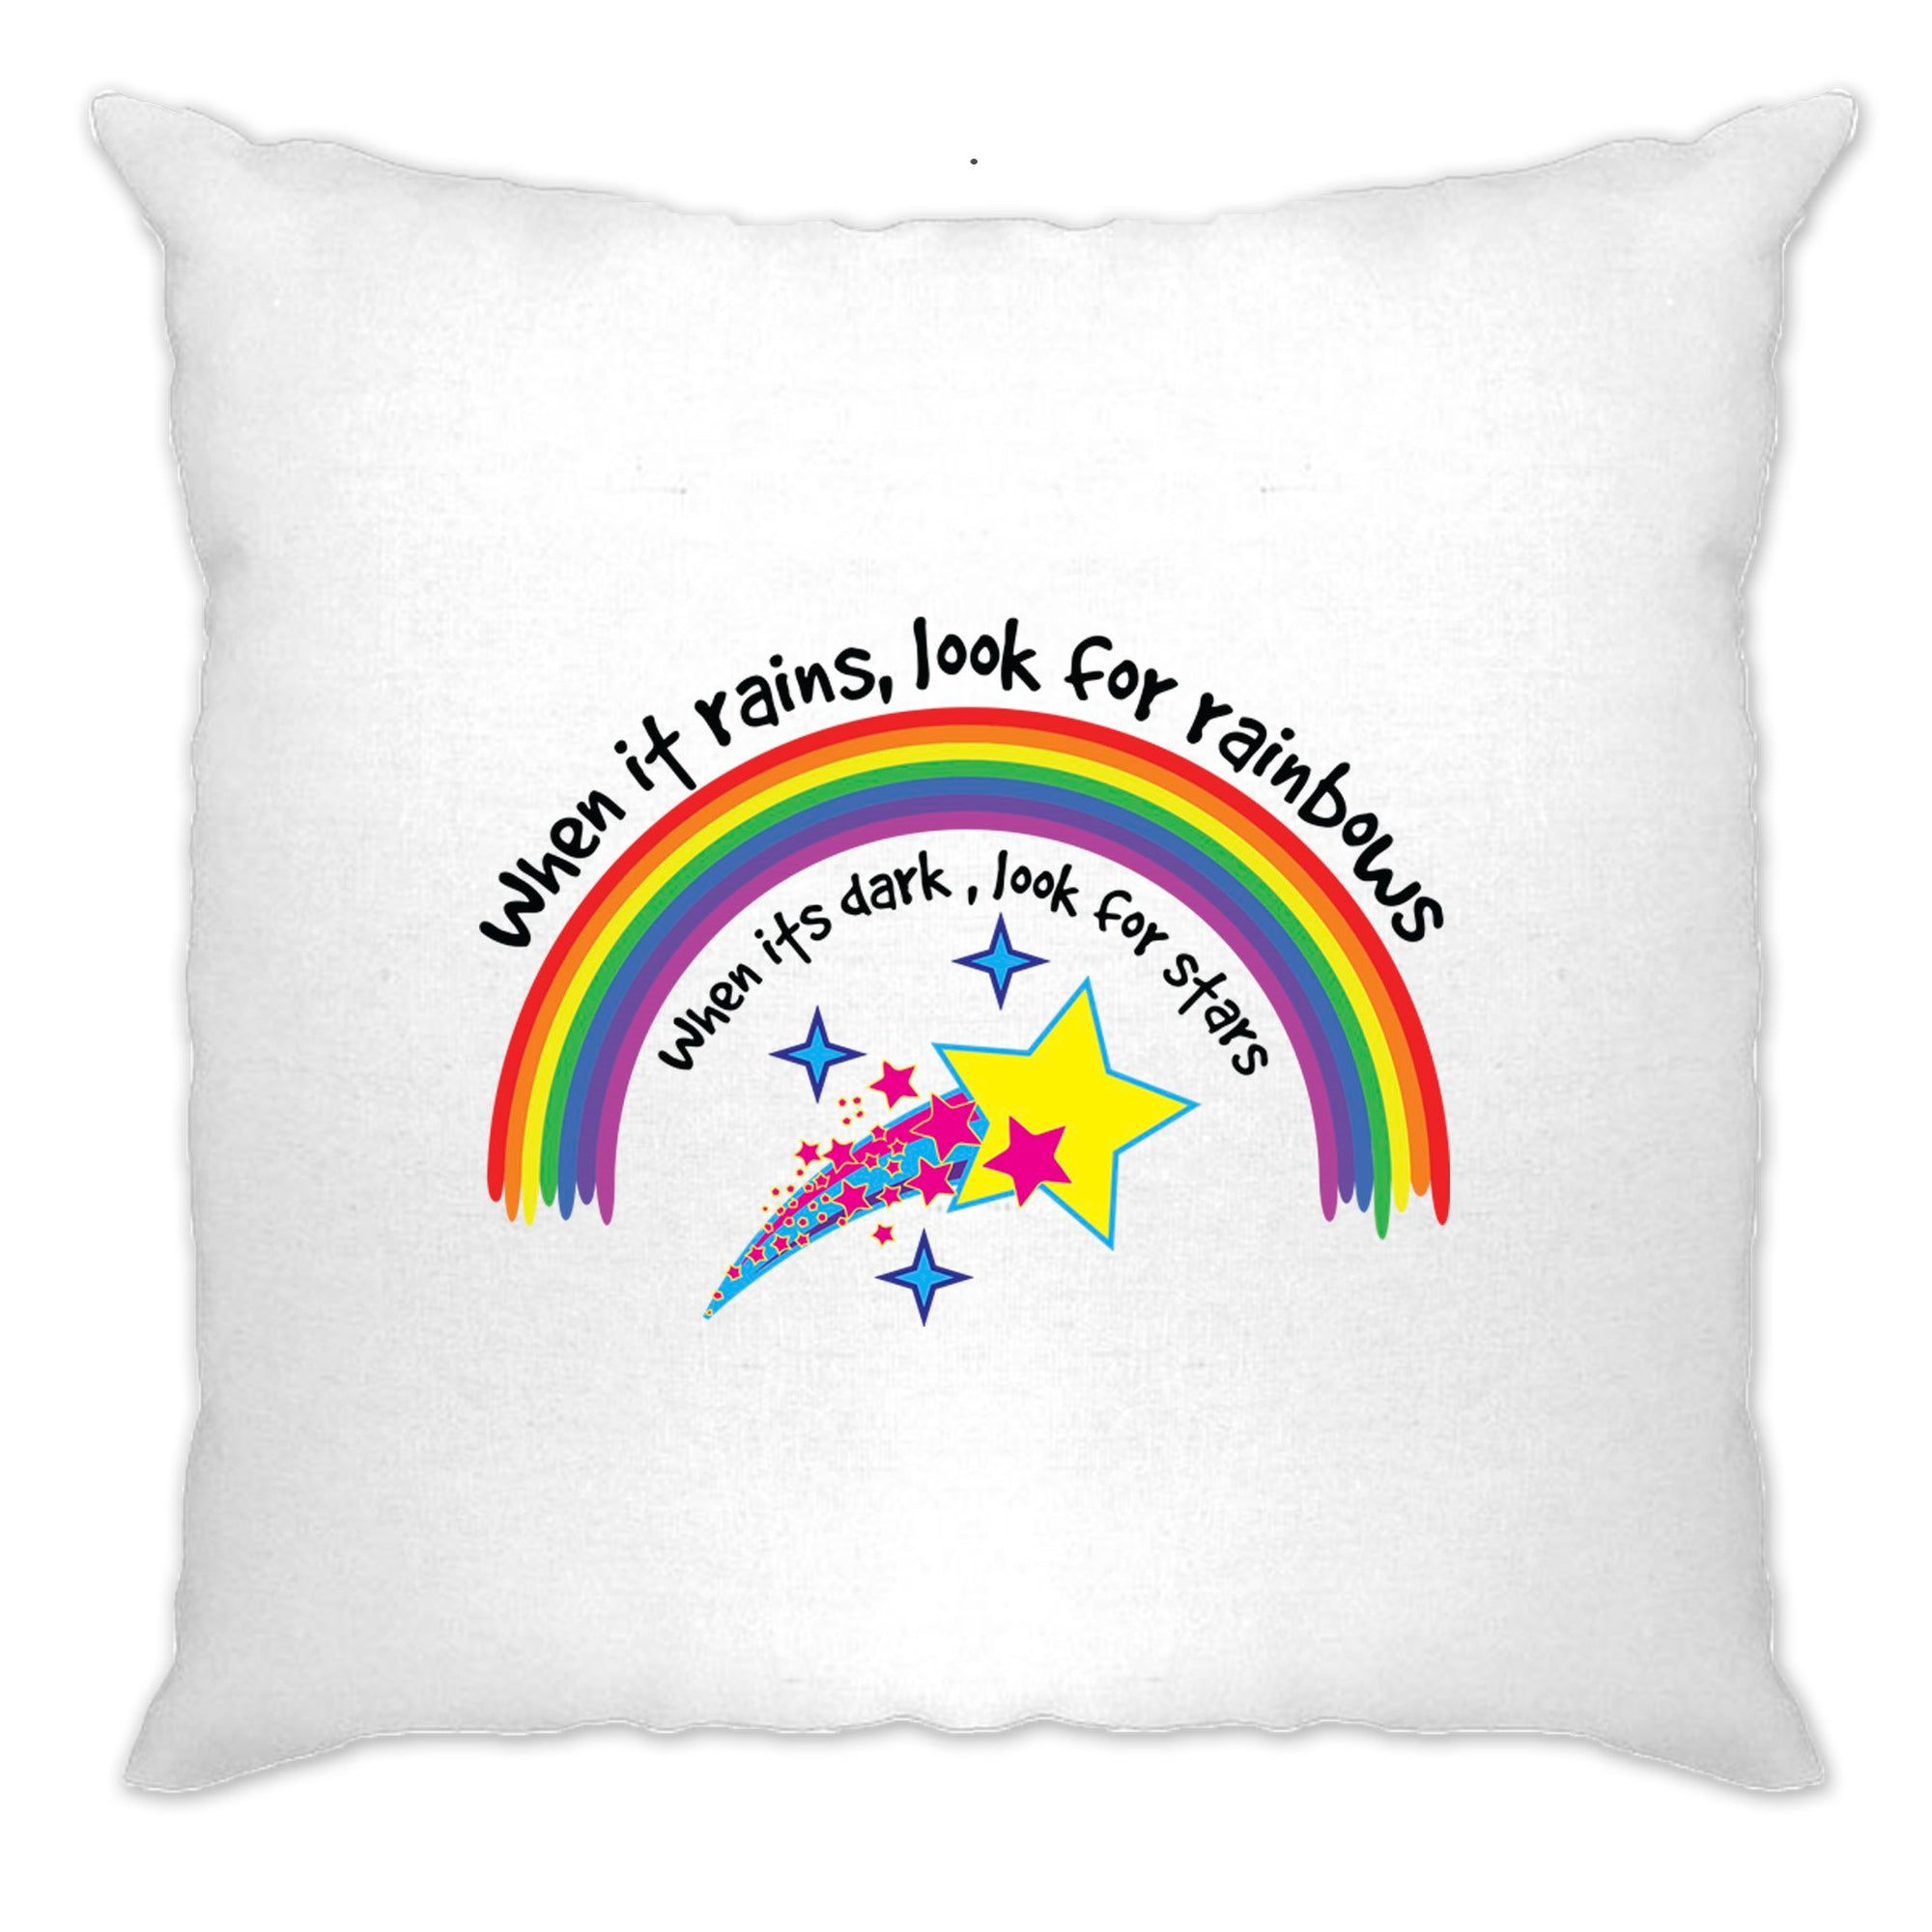 Inspirational Cushion Cover When It Rains, Look For Rainbows